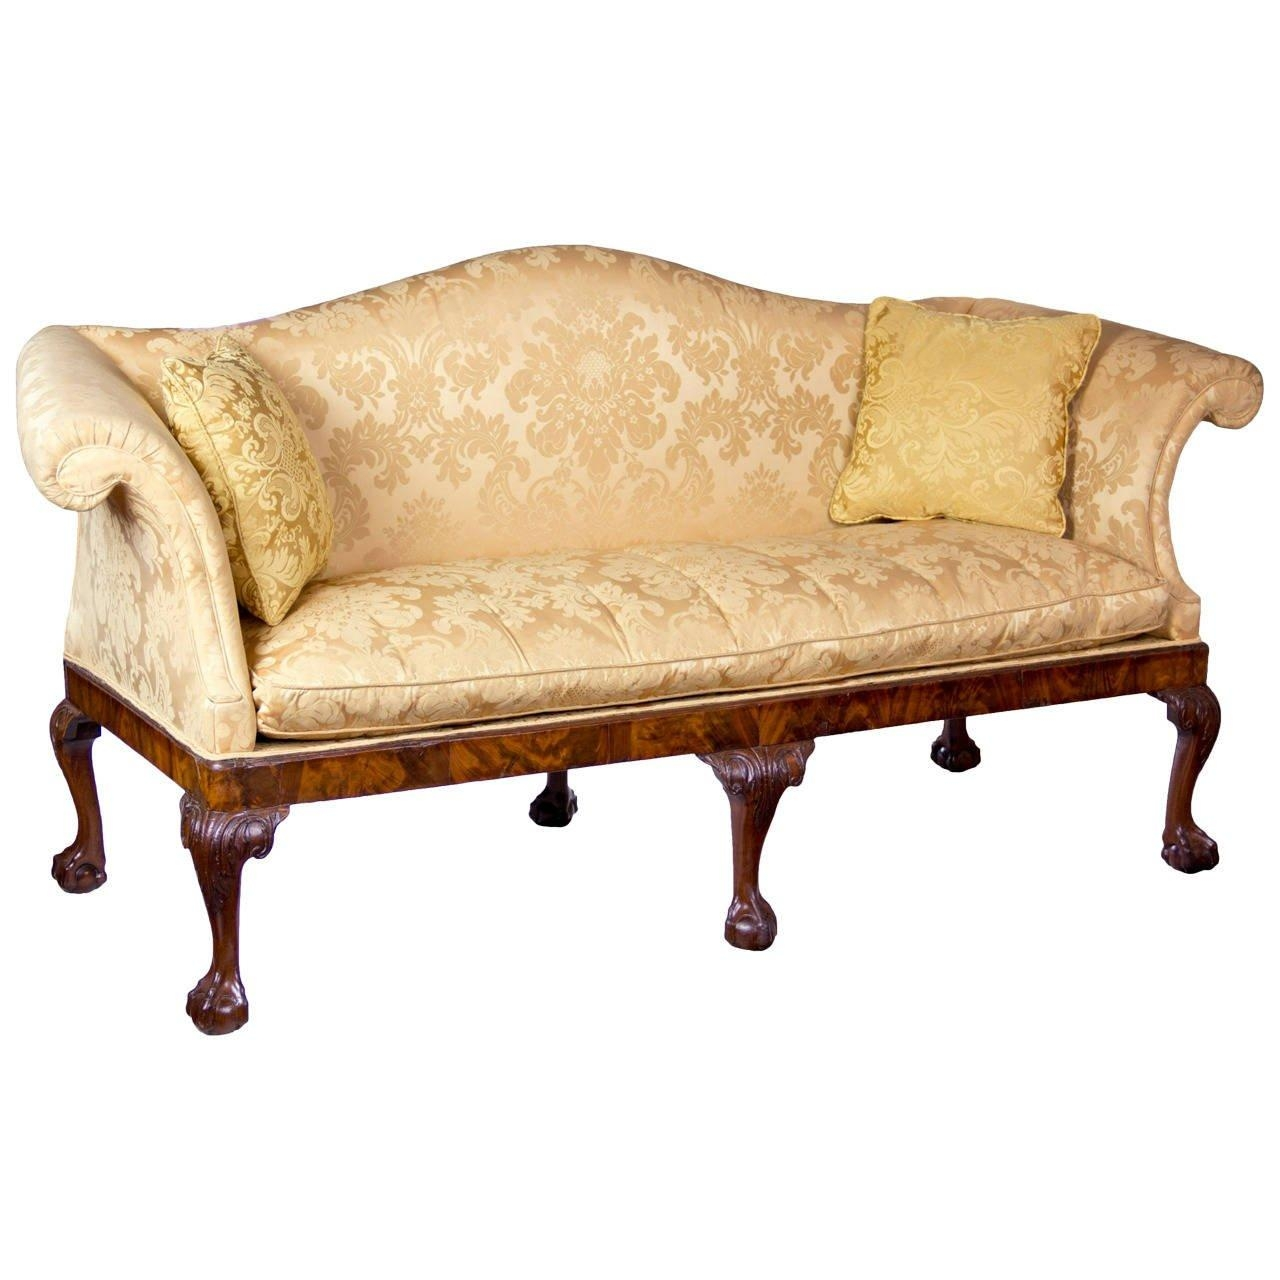 English Sofas – 137 For Sale At 1Stdibs In Chintz Sofas (View 5 of 13)